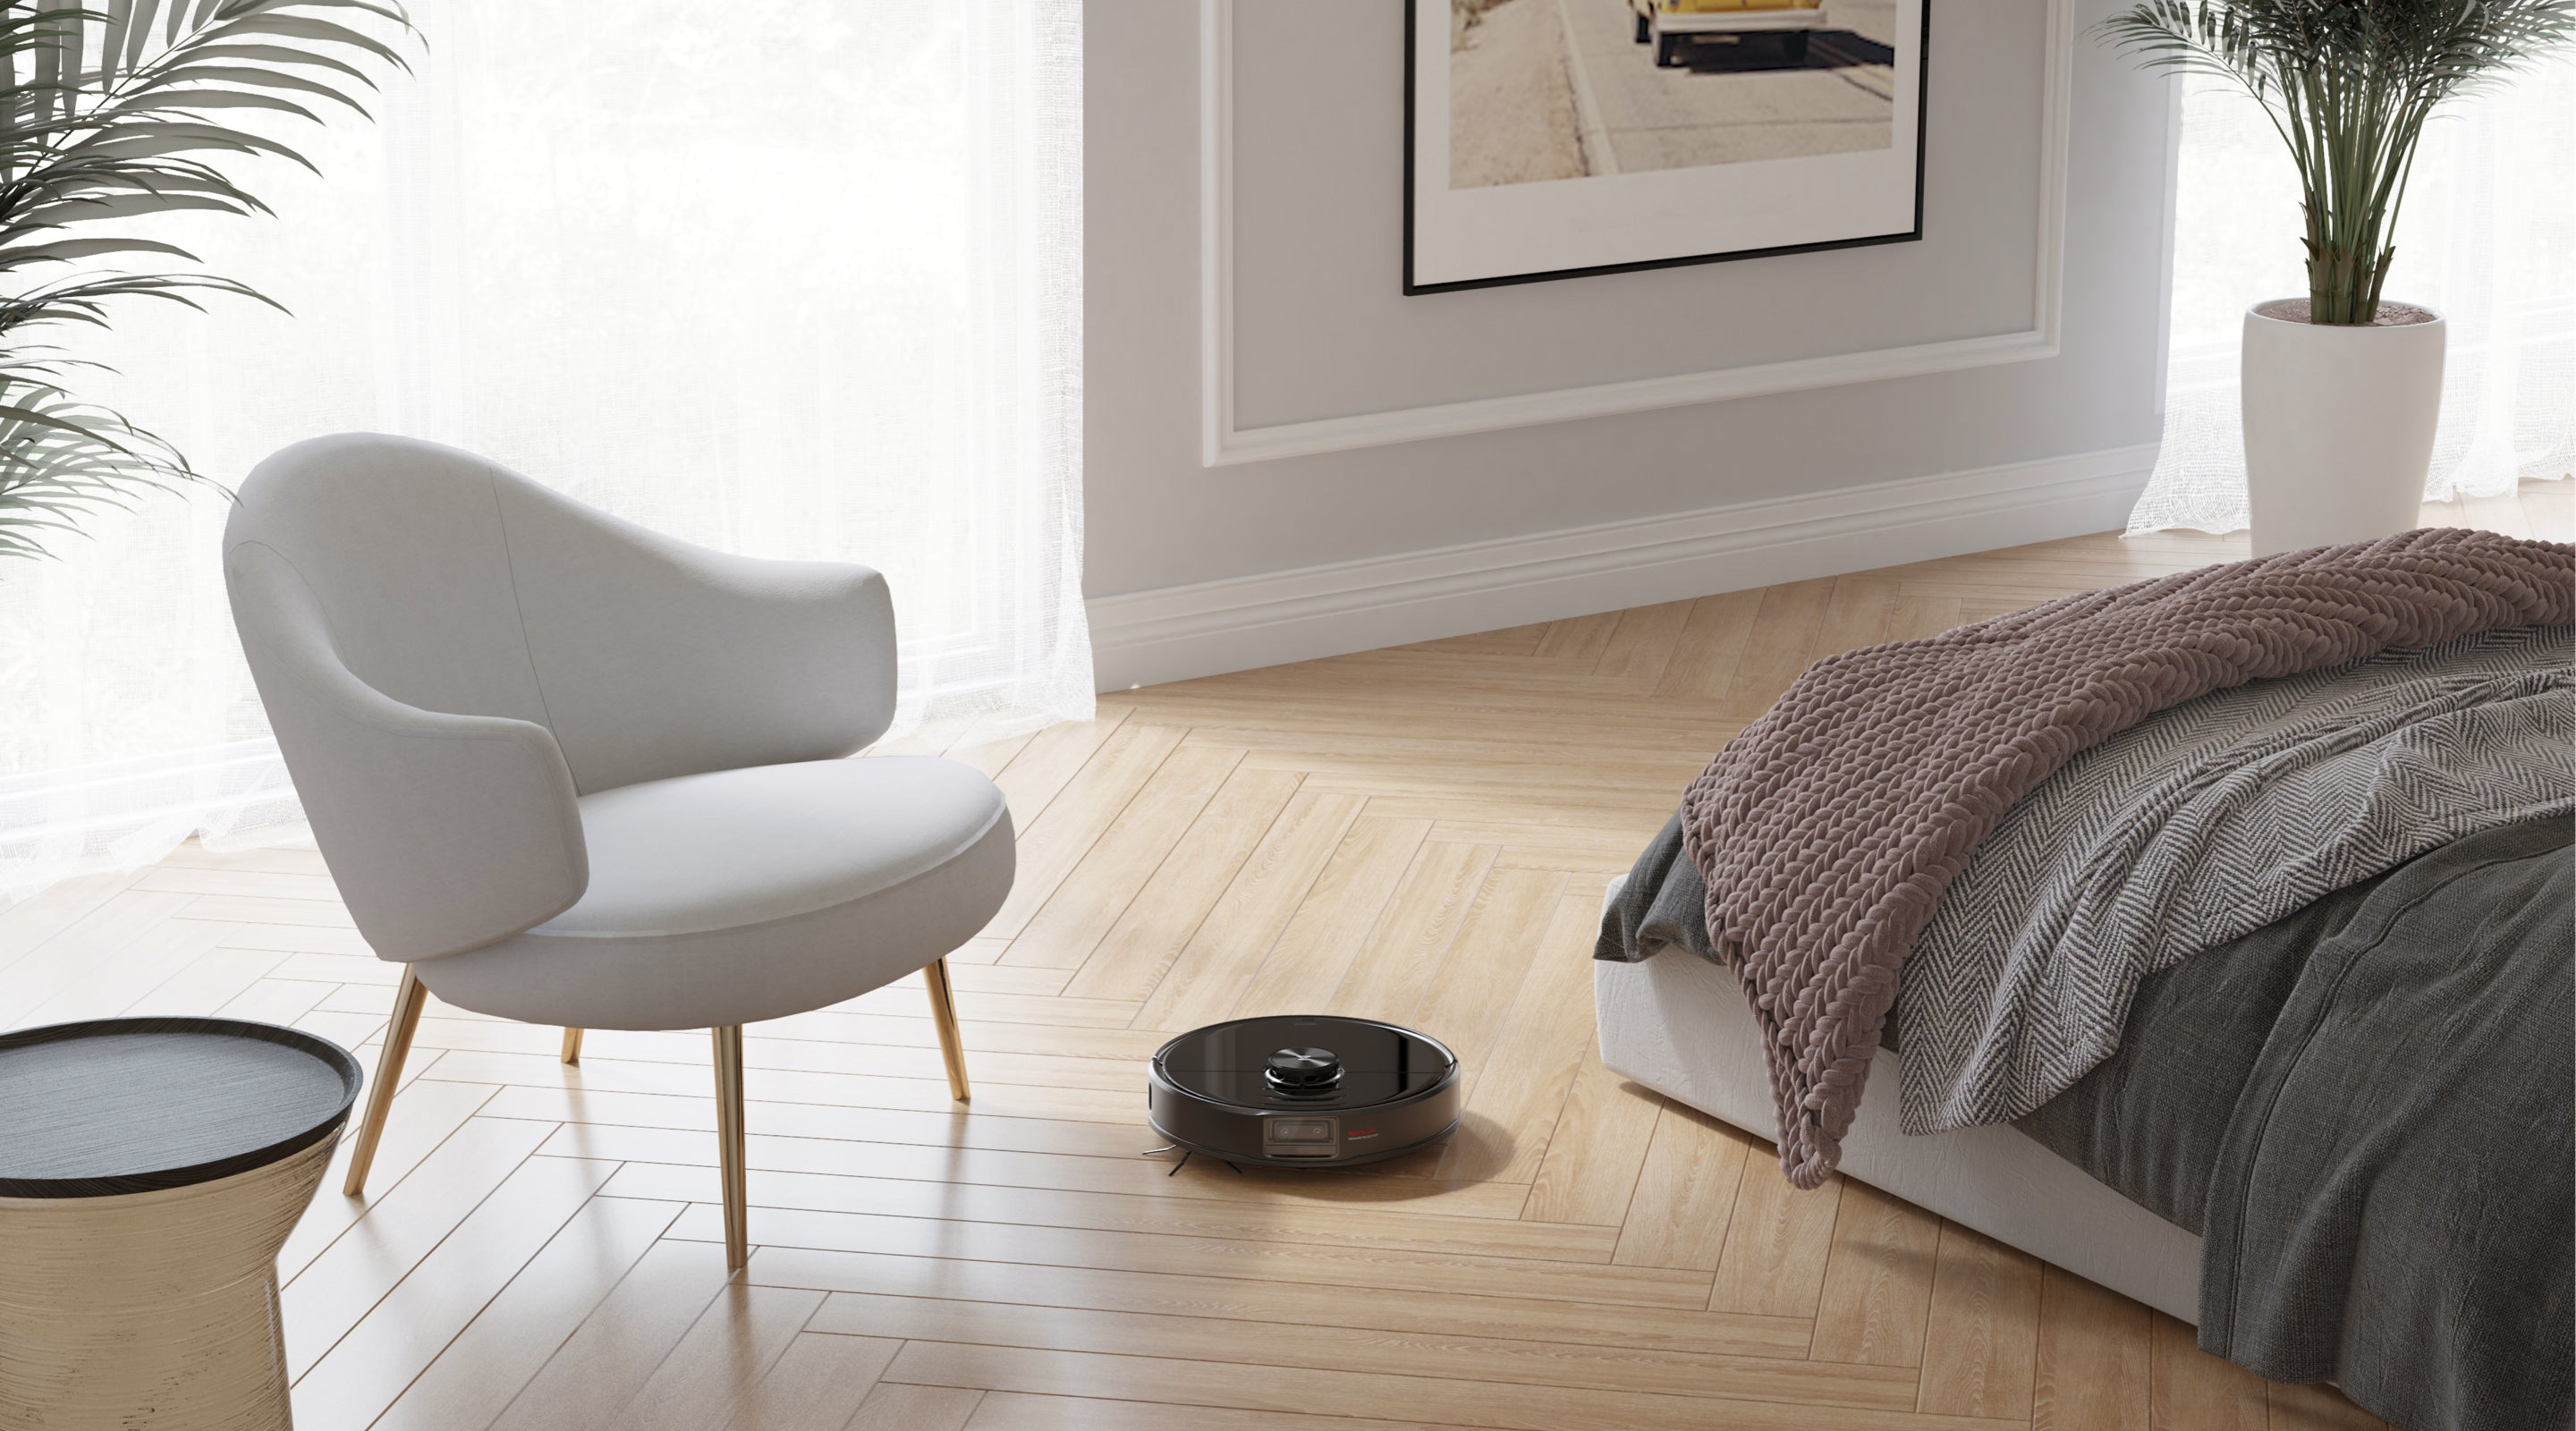 Use Roborock S6 MaxV to reach more floors and unlock advanced mopping features